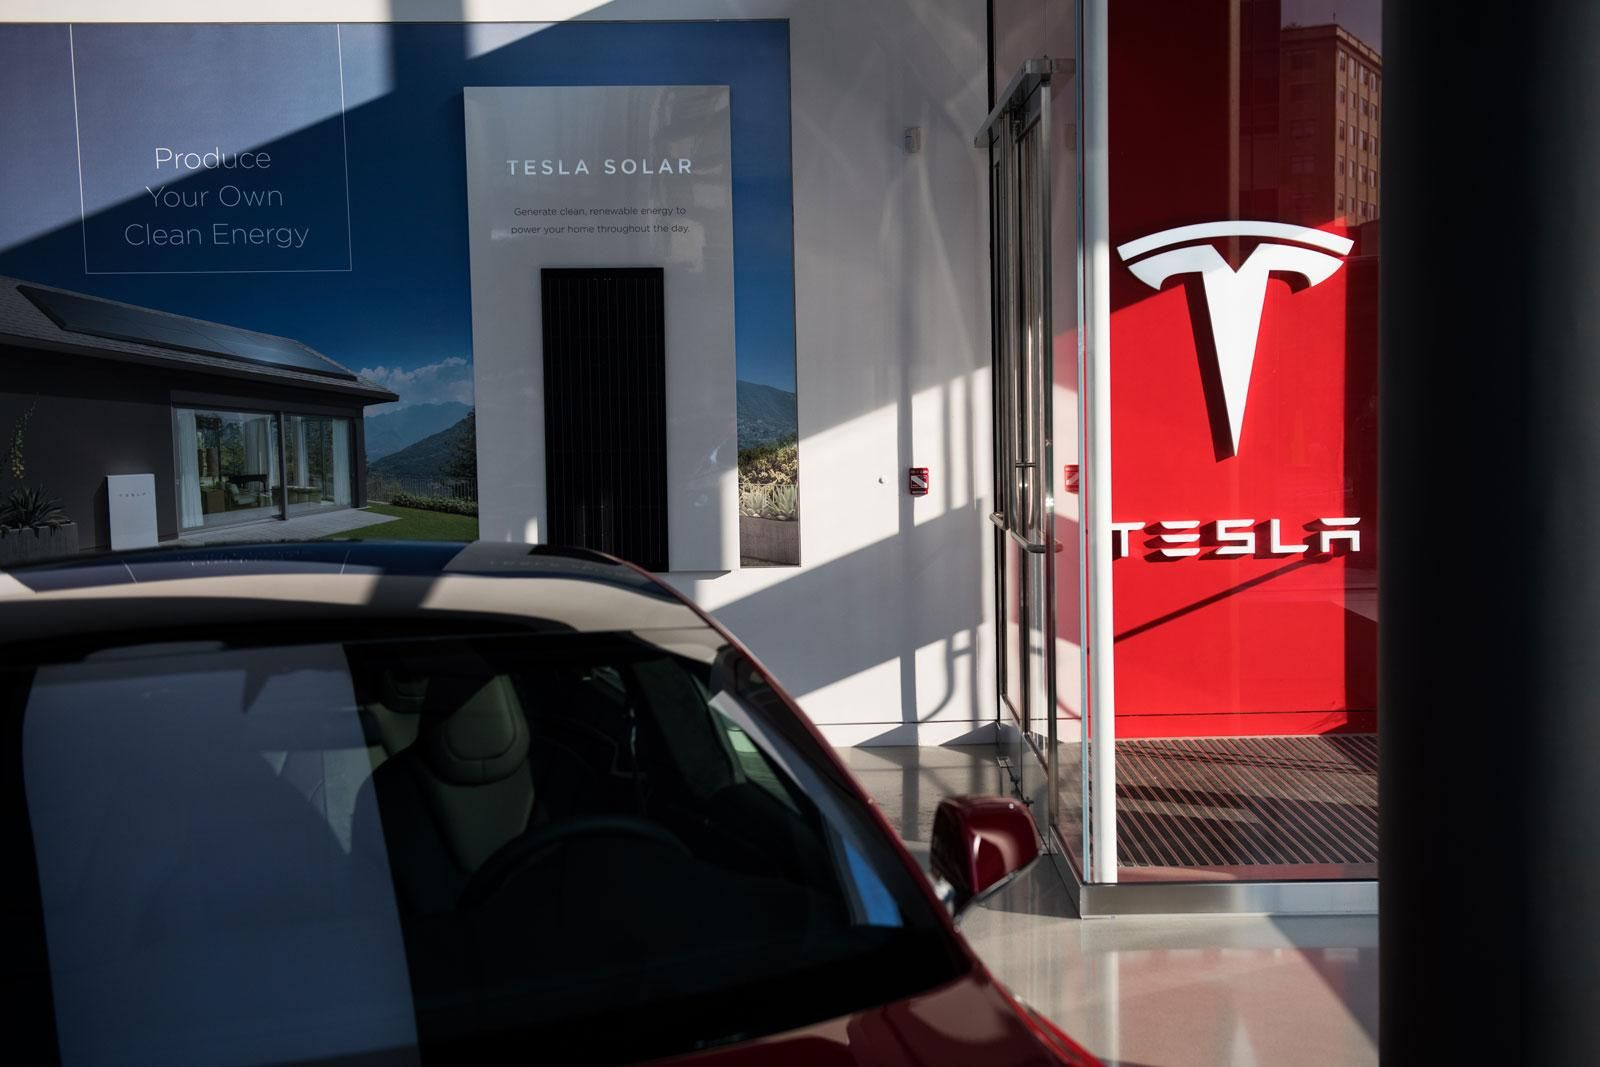 If there's any doubt Tesla isn't just a car company